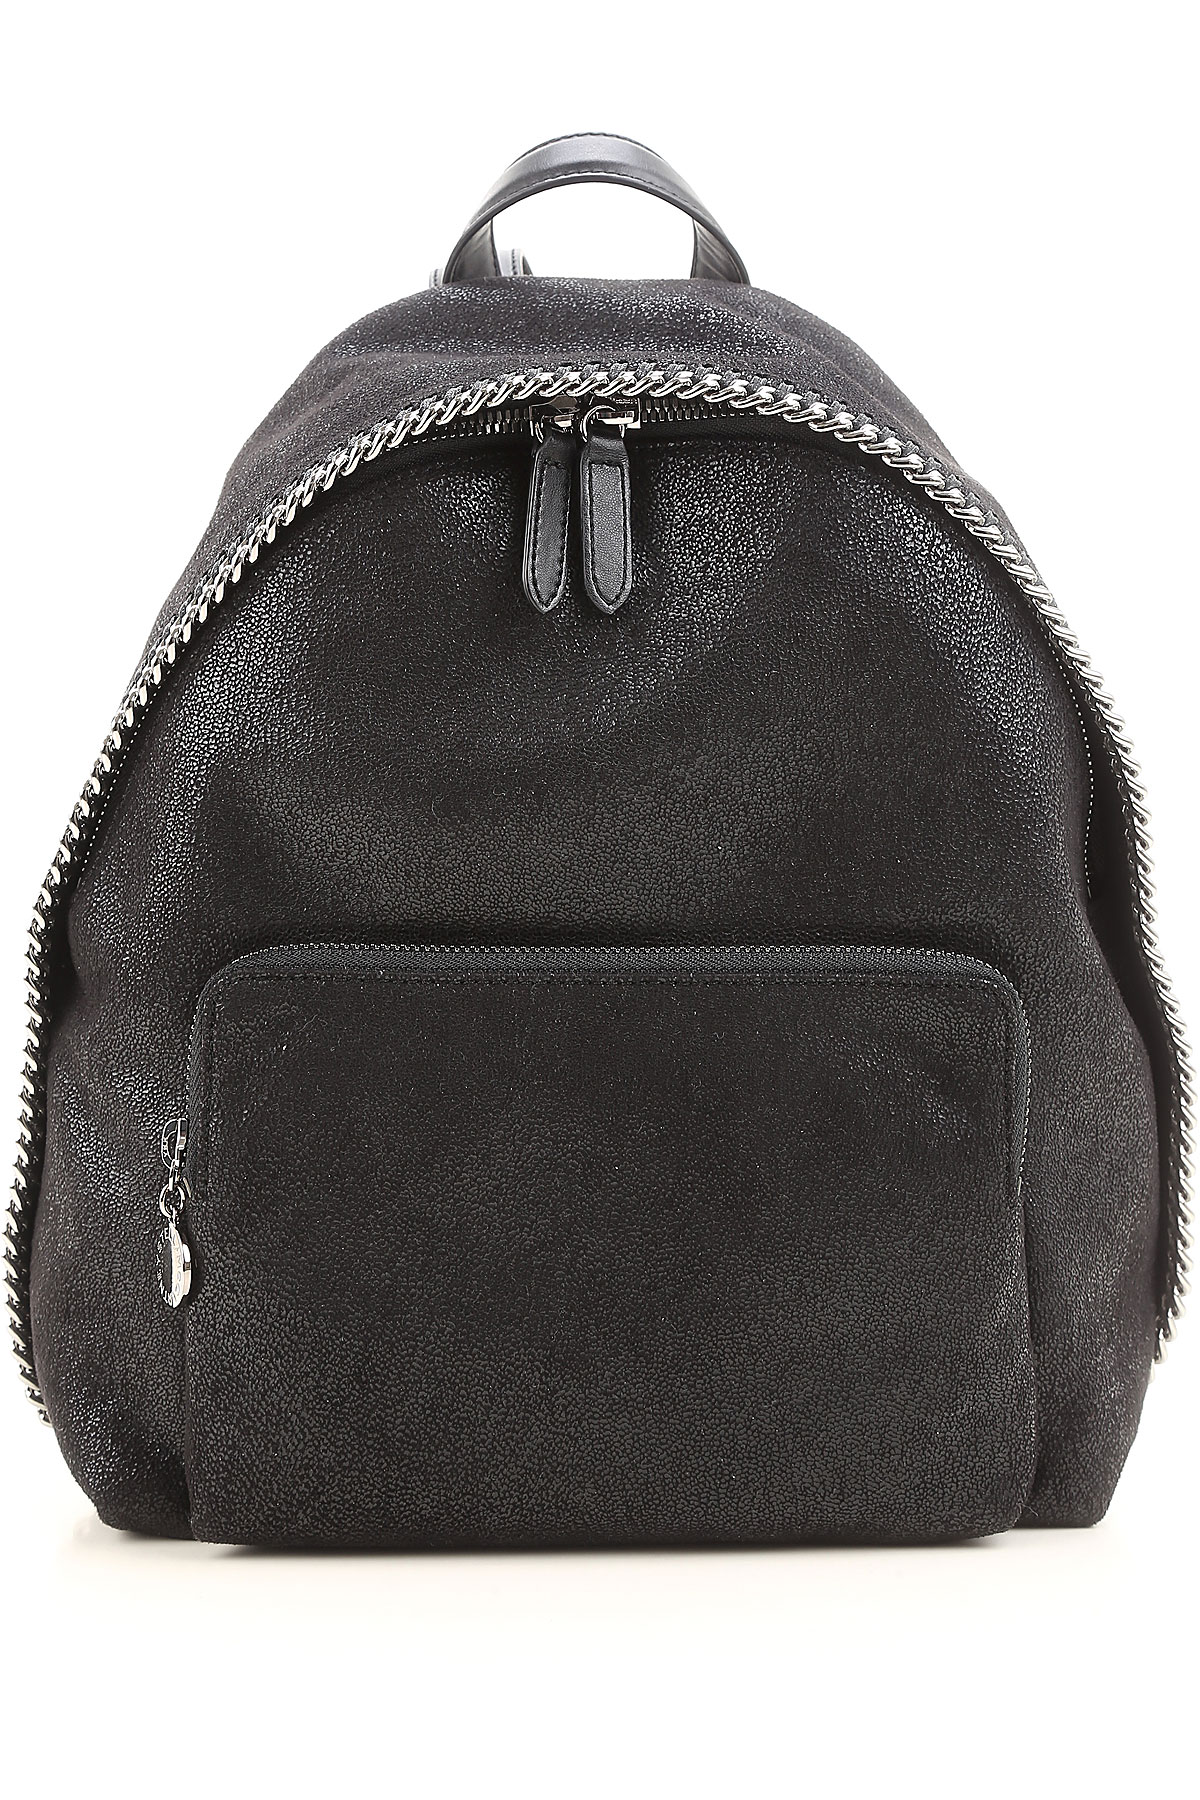 Stella McCartney Backpack for Women, Leather, Vegetable Leather, 2017 USA-435503